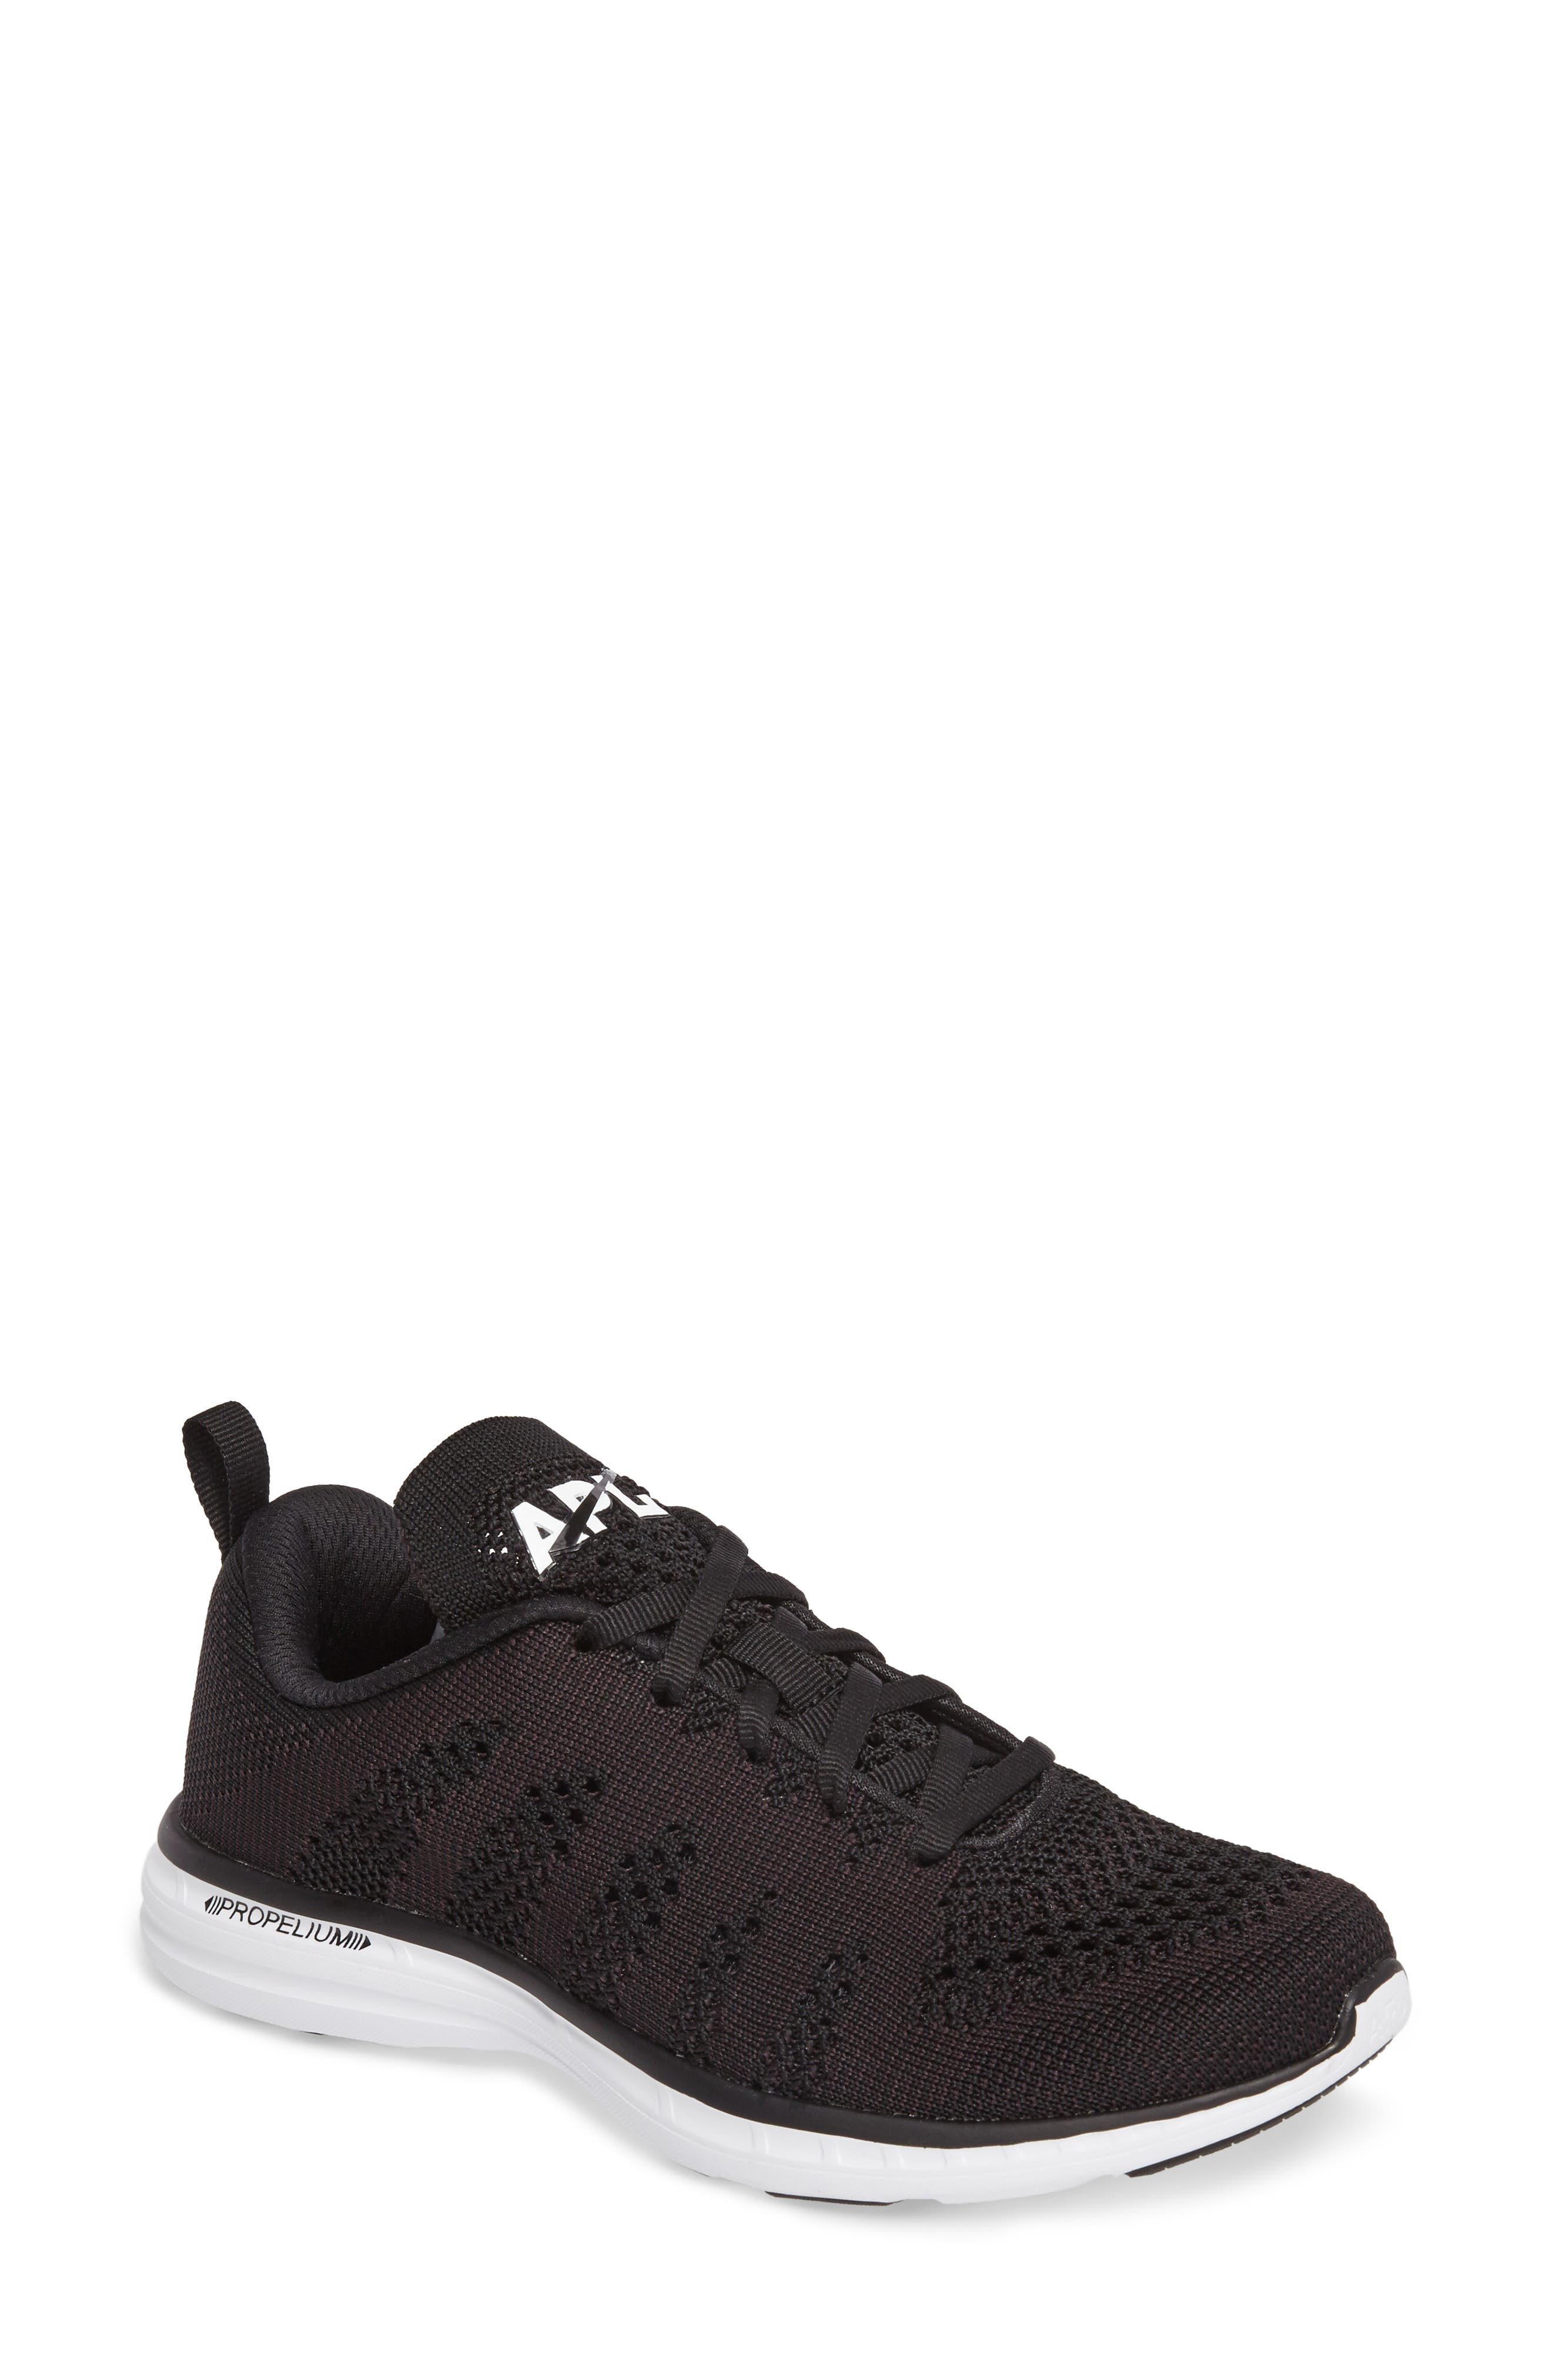 APL ATHLETIC PROPULSION LABS Athletic Propulsion Labs Women'S Techloom Pro Knit Low-Top Sneakers in Black/White/Black